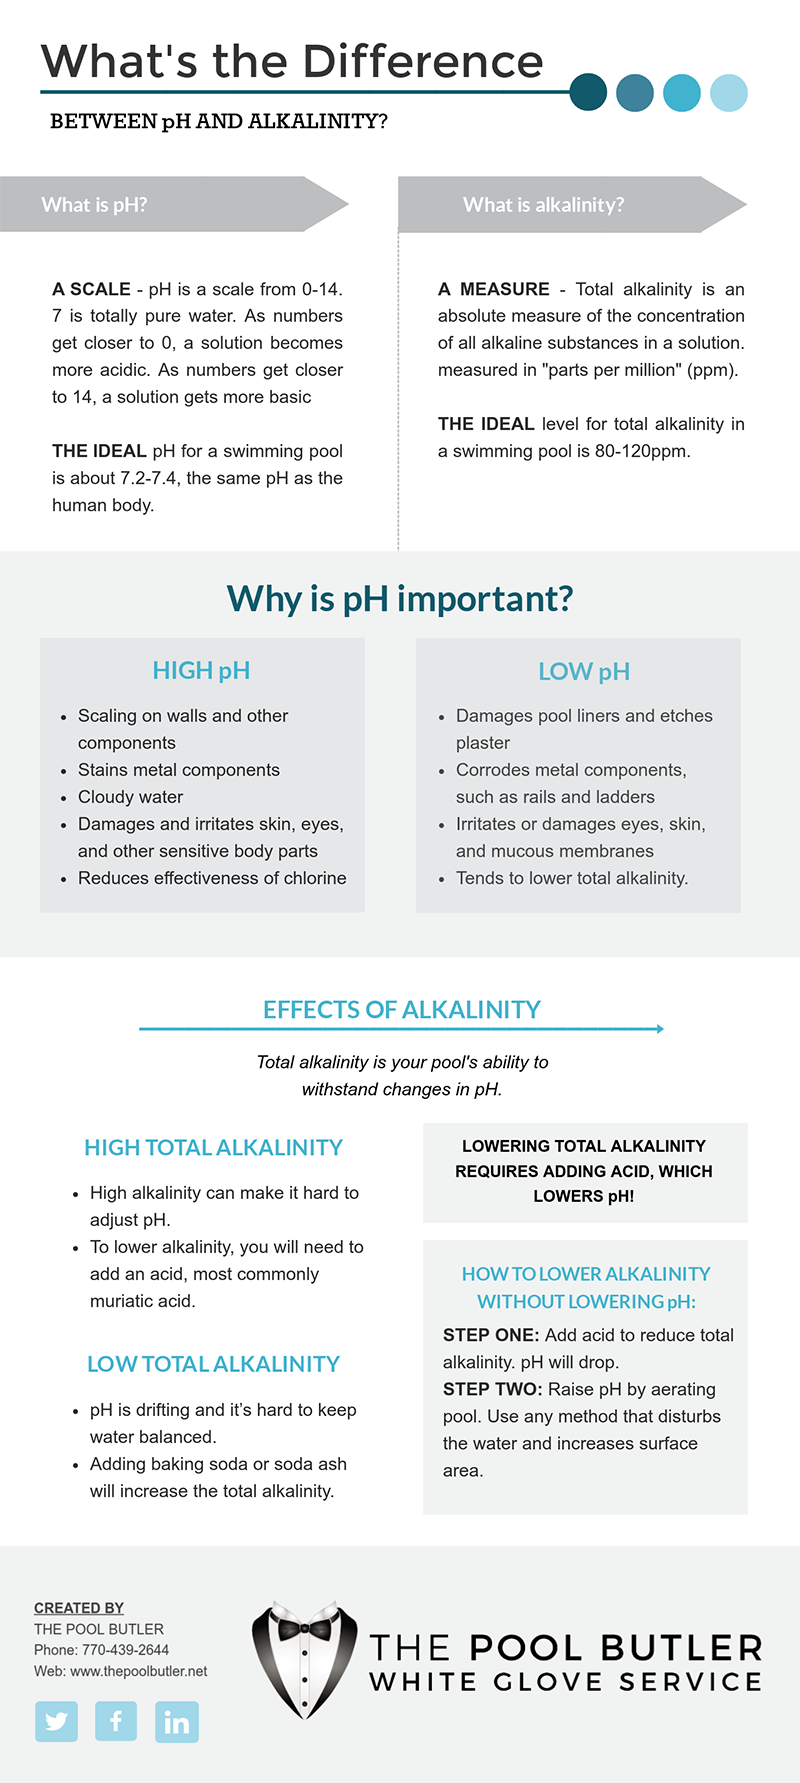 The Difference Between pH and Alkalinity [infographic]